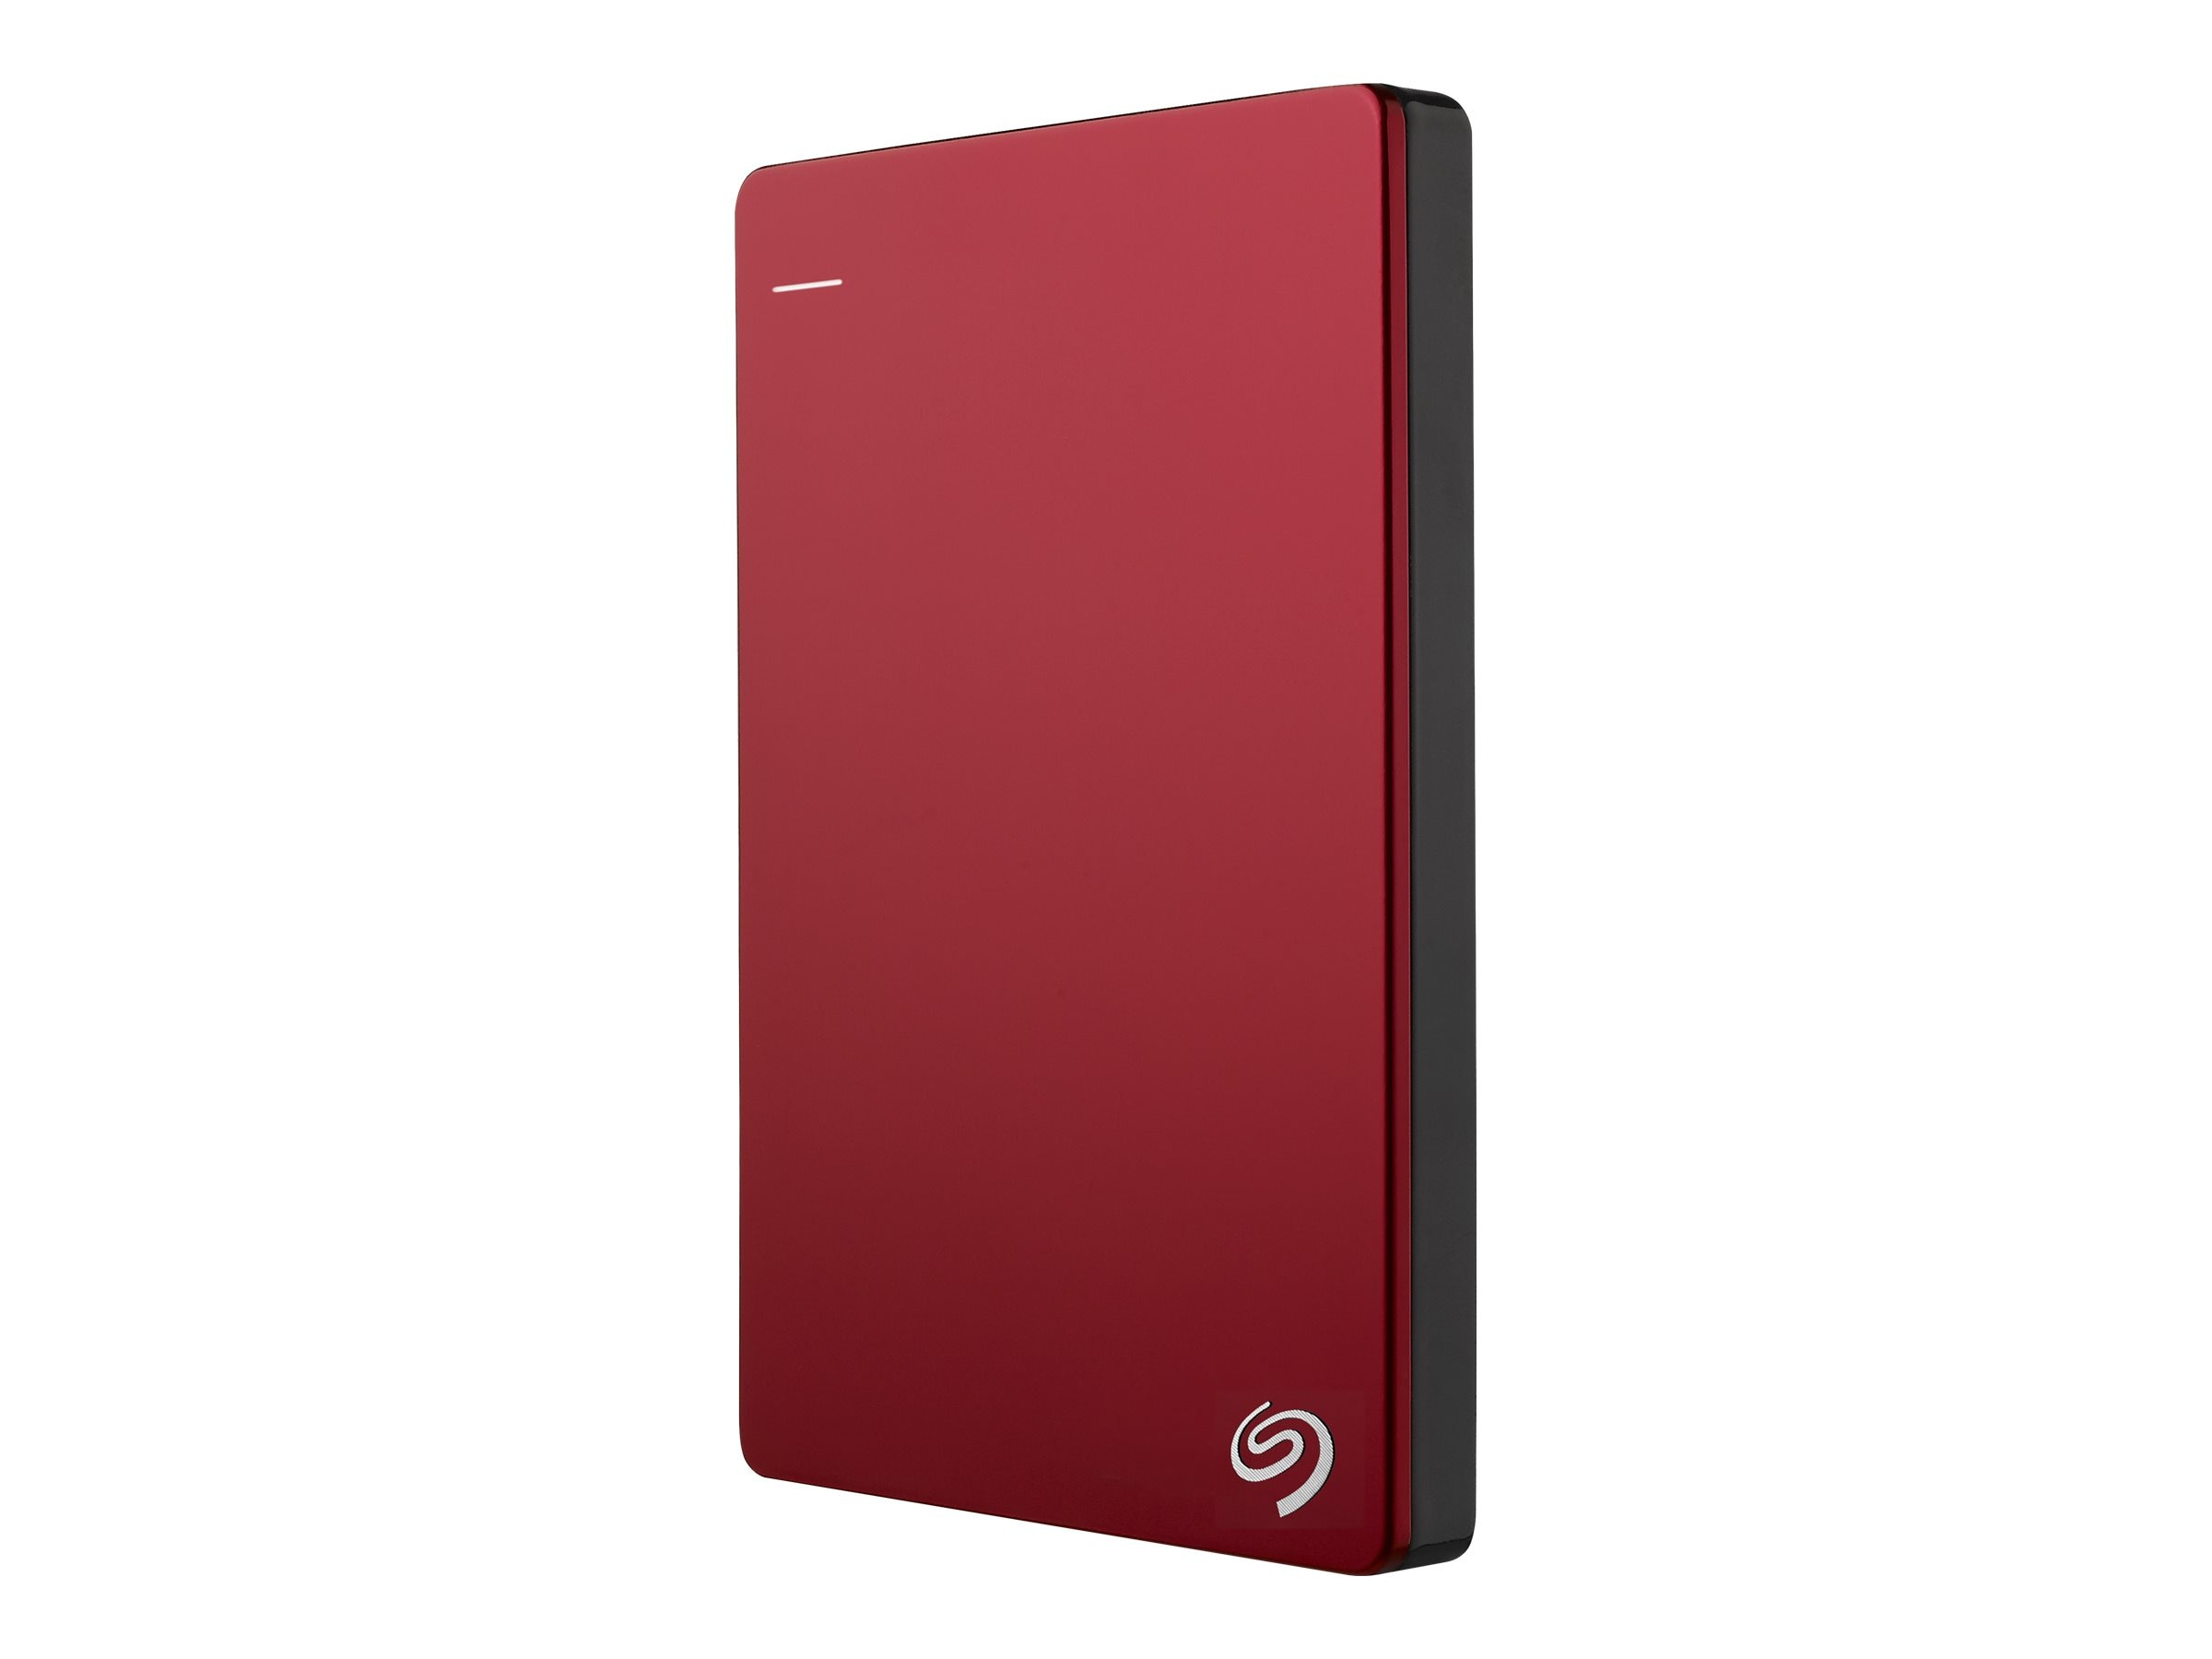 Seagate 2TB Backup Plus USB 3.0 Portable Hard Drive - Red, STDR2000103, 16479589, Hard Drives - External